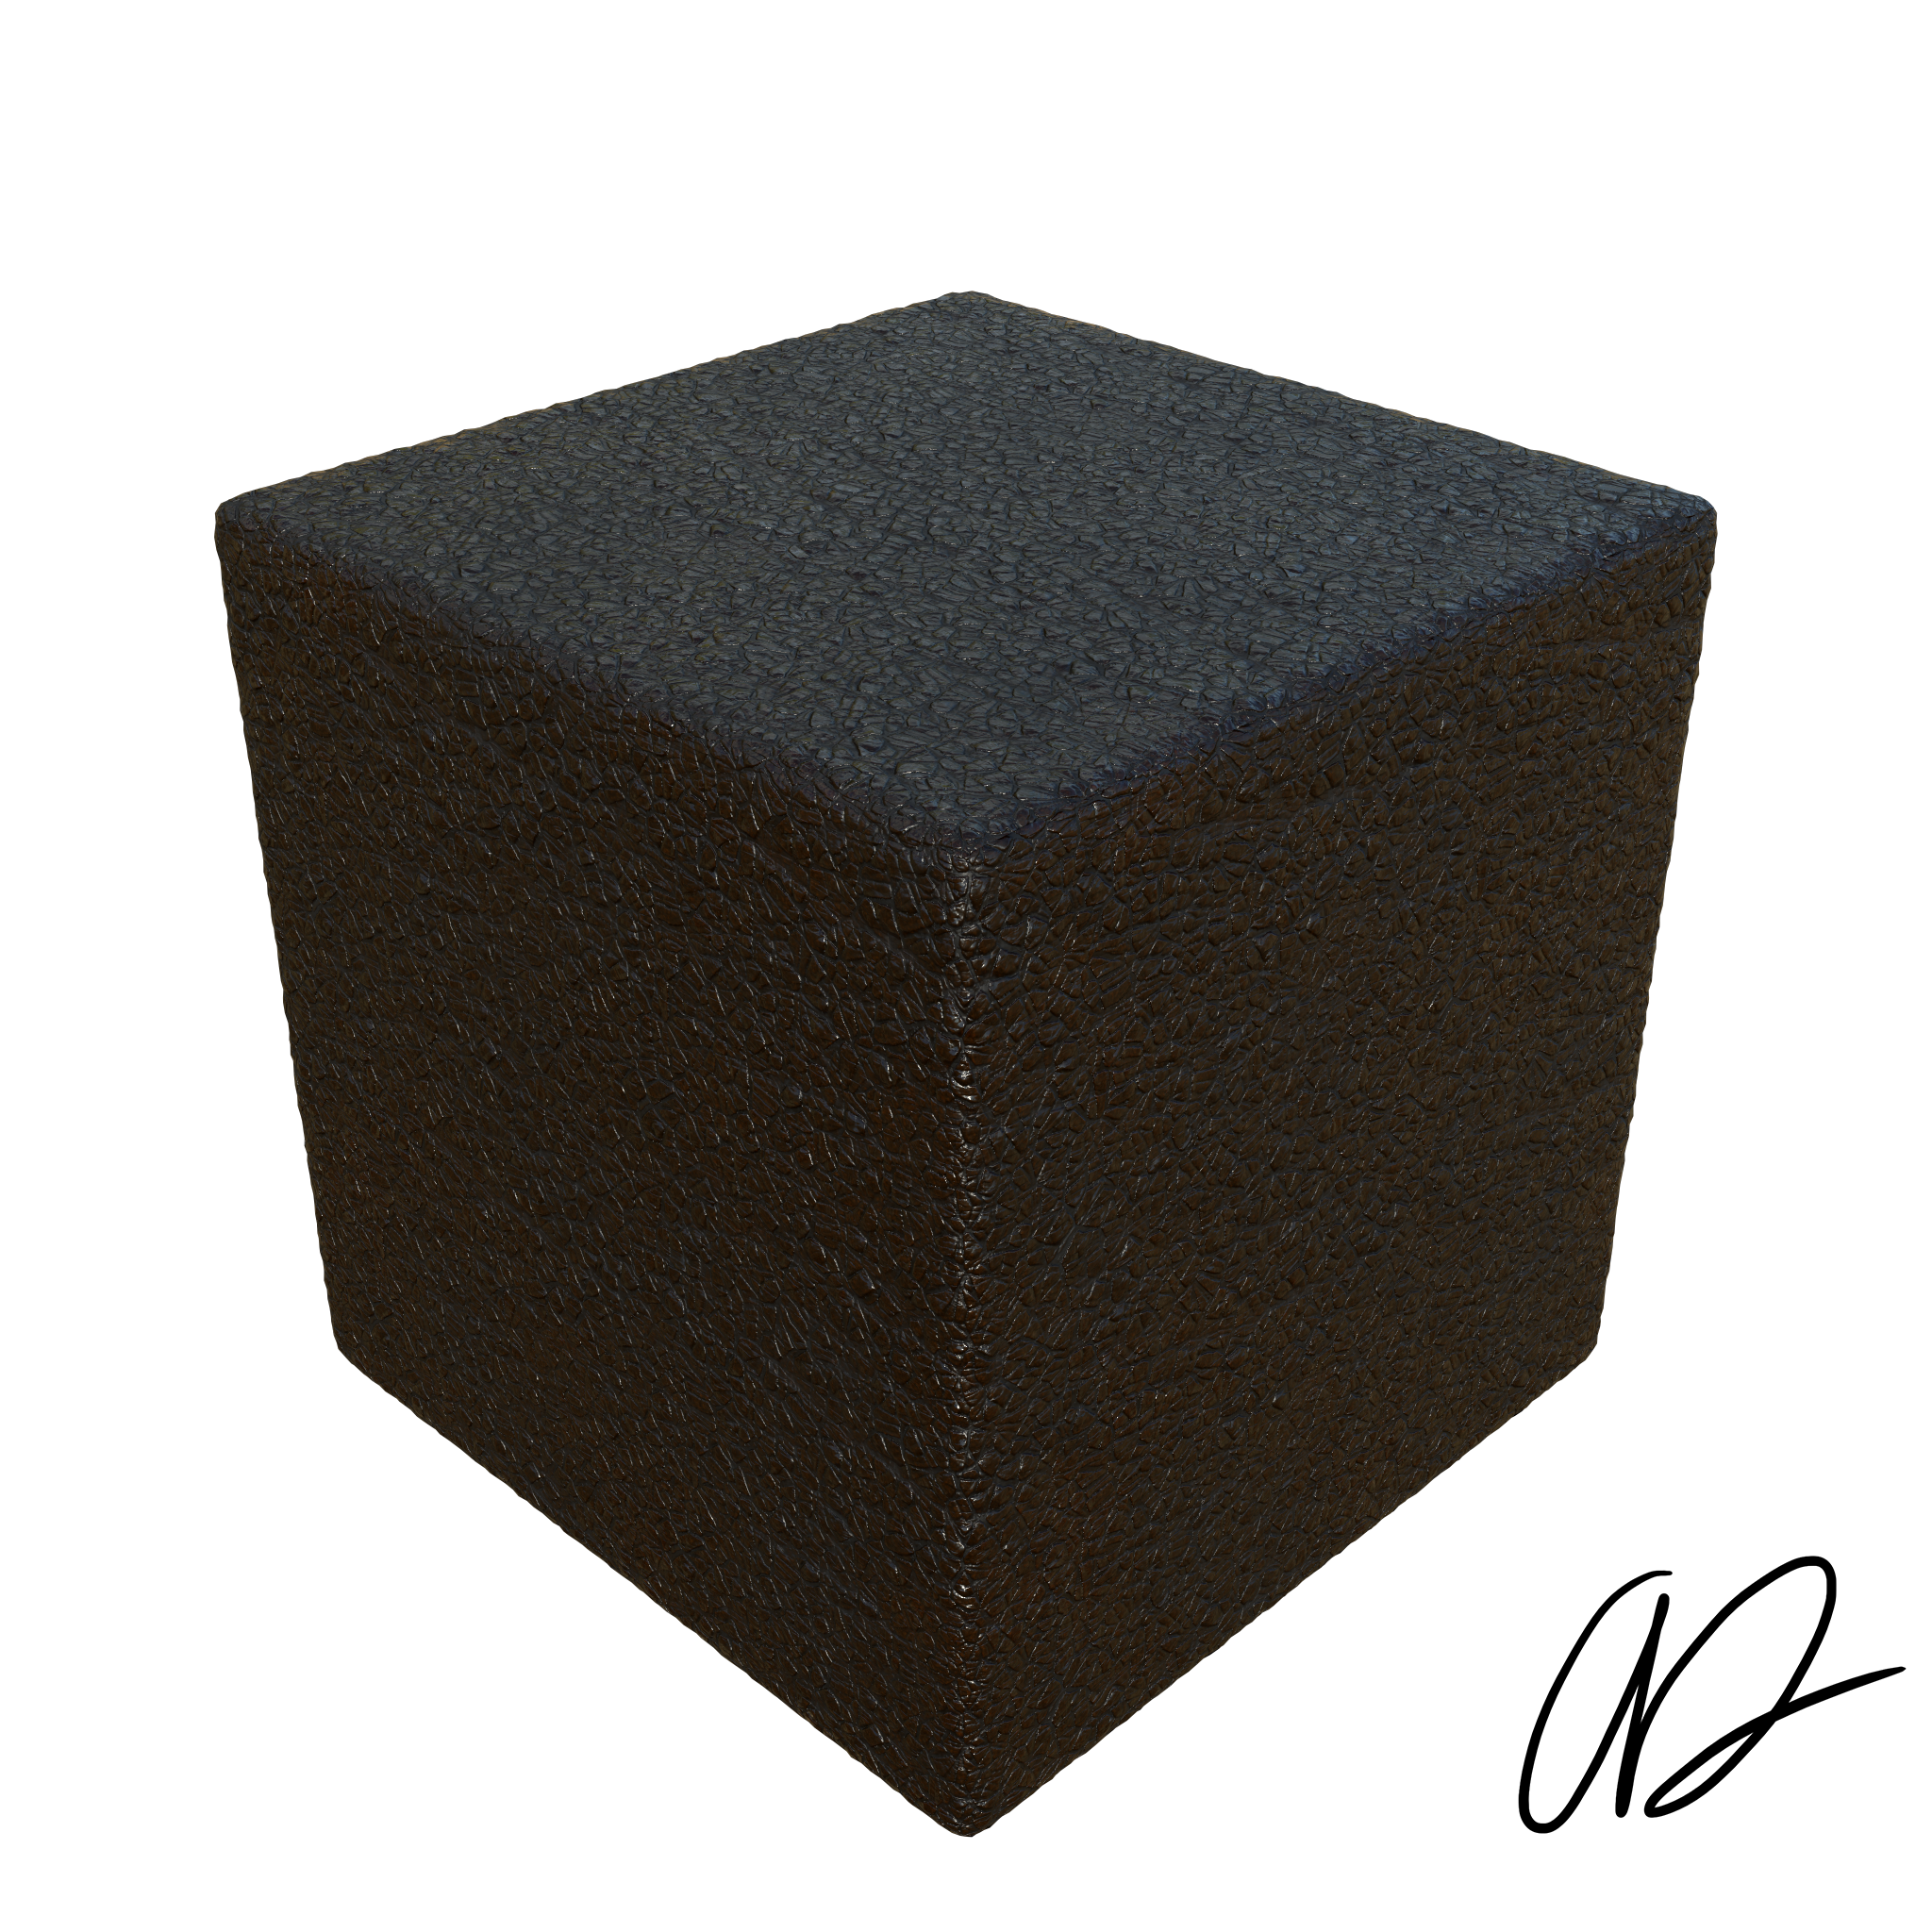 Leather_Render01.png